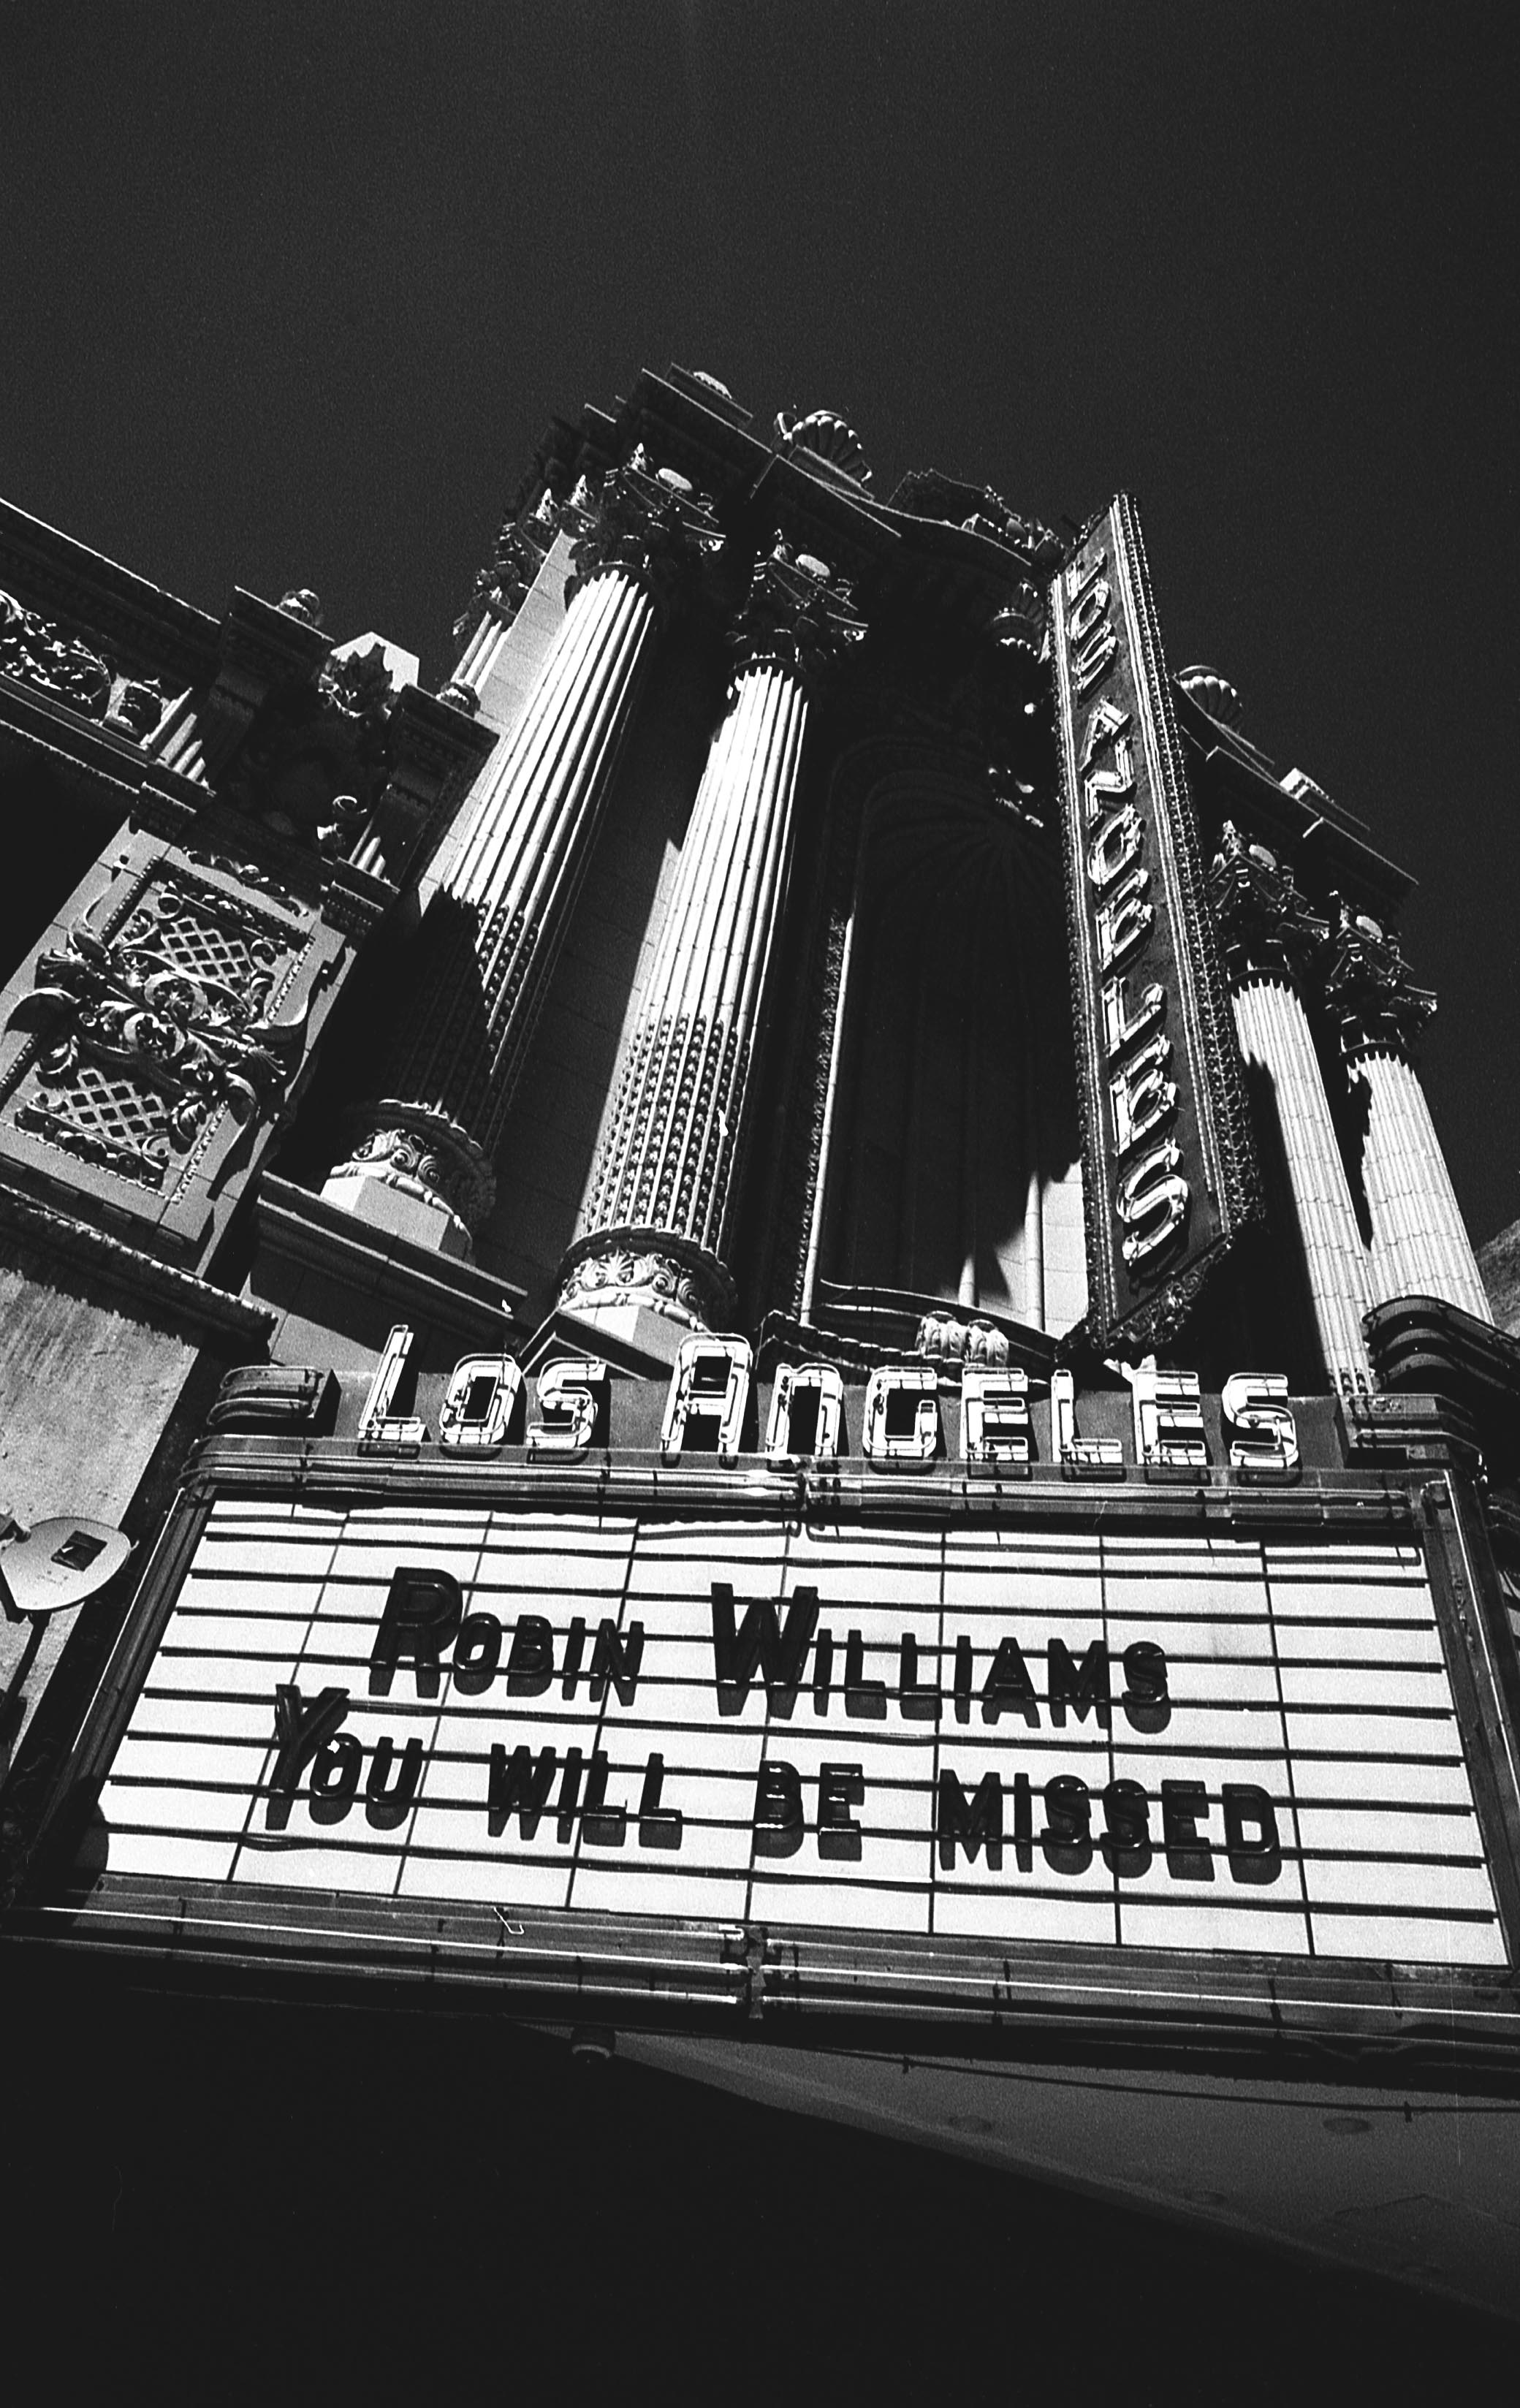 Robin Williams Memorial, Downtown, LA